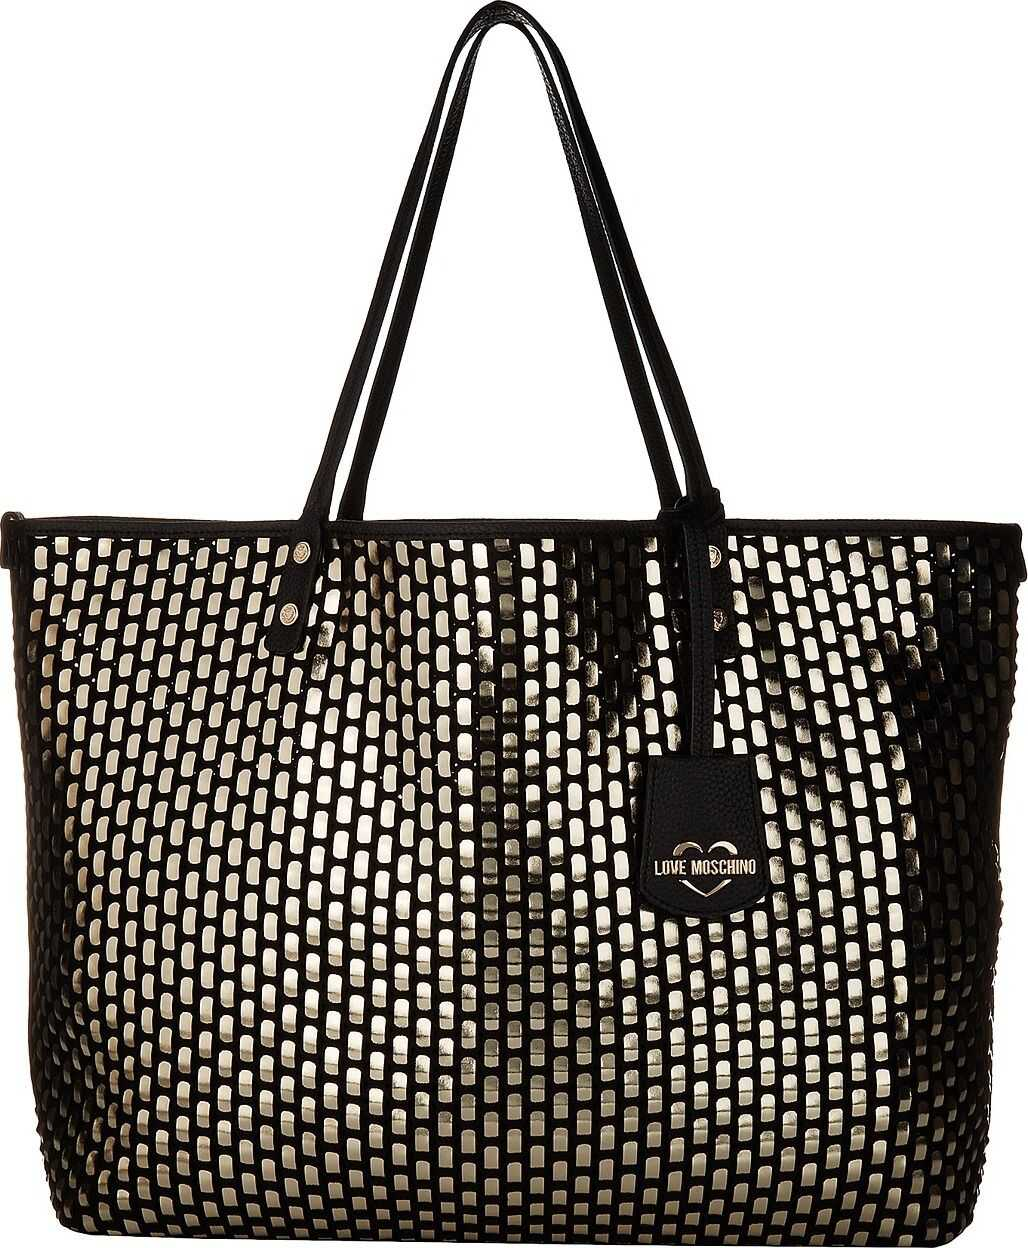 LOVE Moschino Large Woven Tote Gold/Black